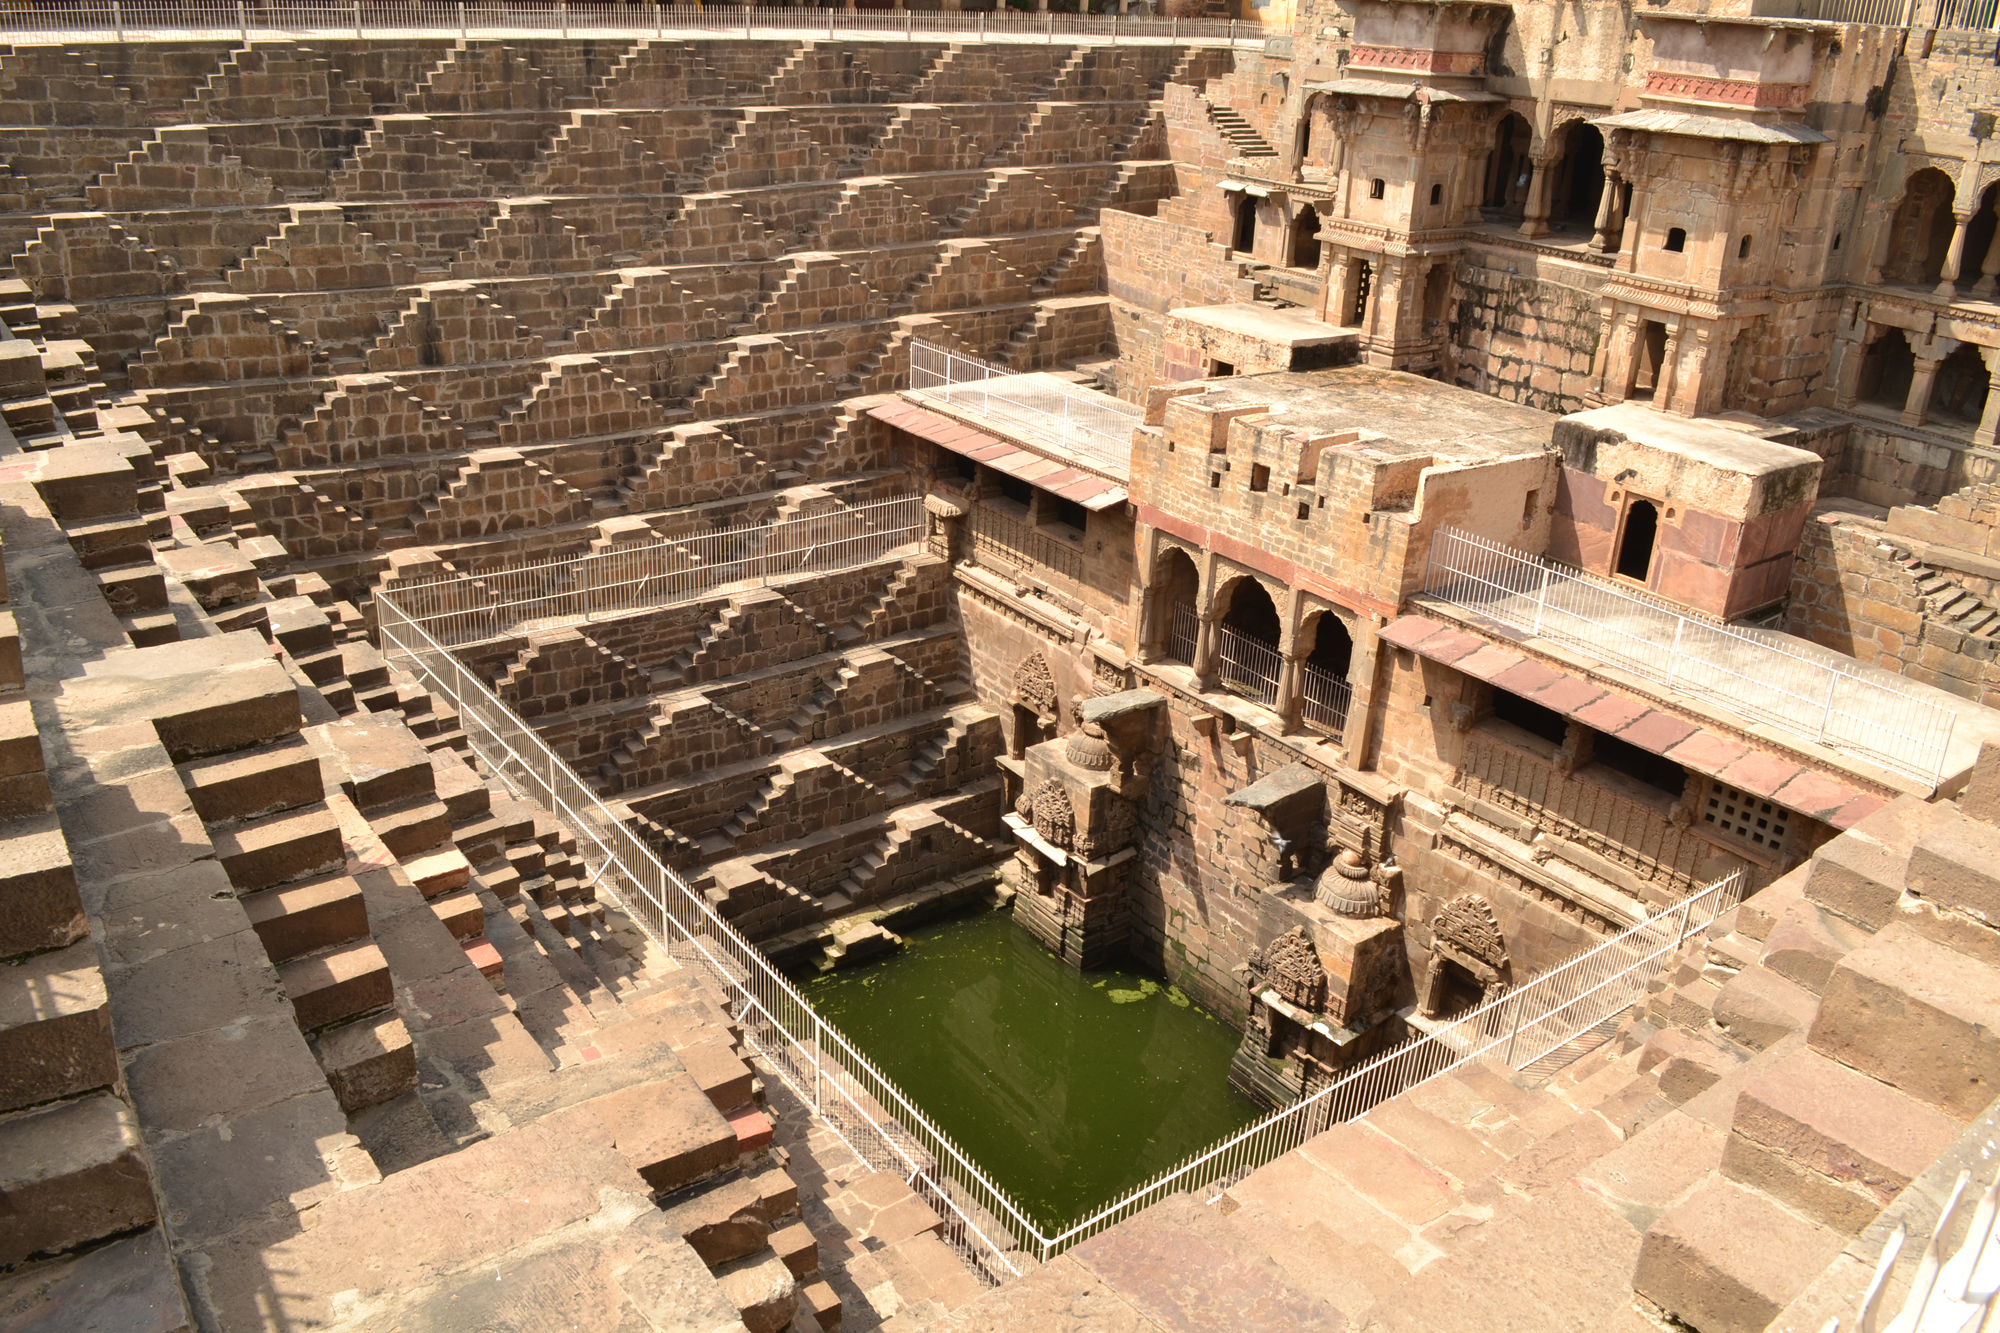 Chand Baori Puits degrès Voyage Inde Booktrip